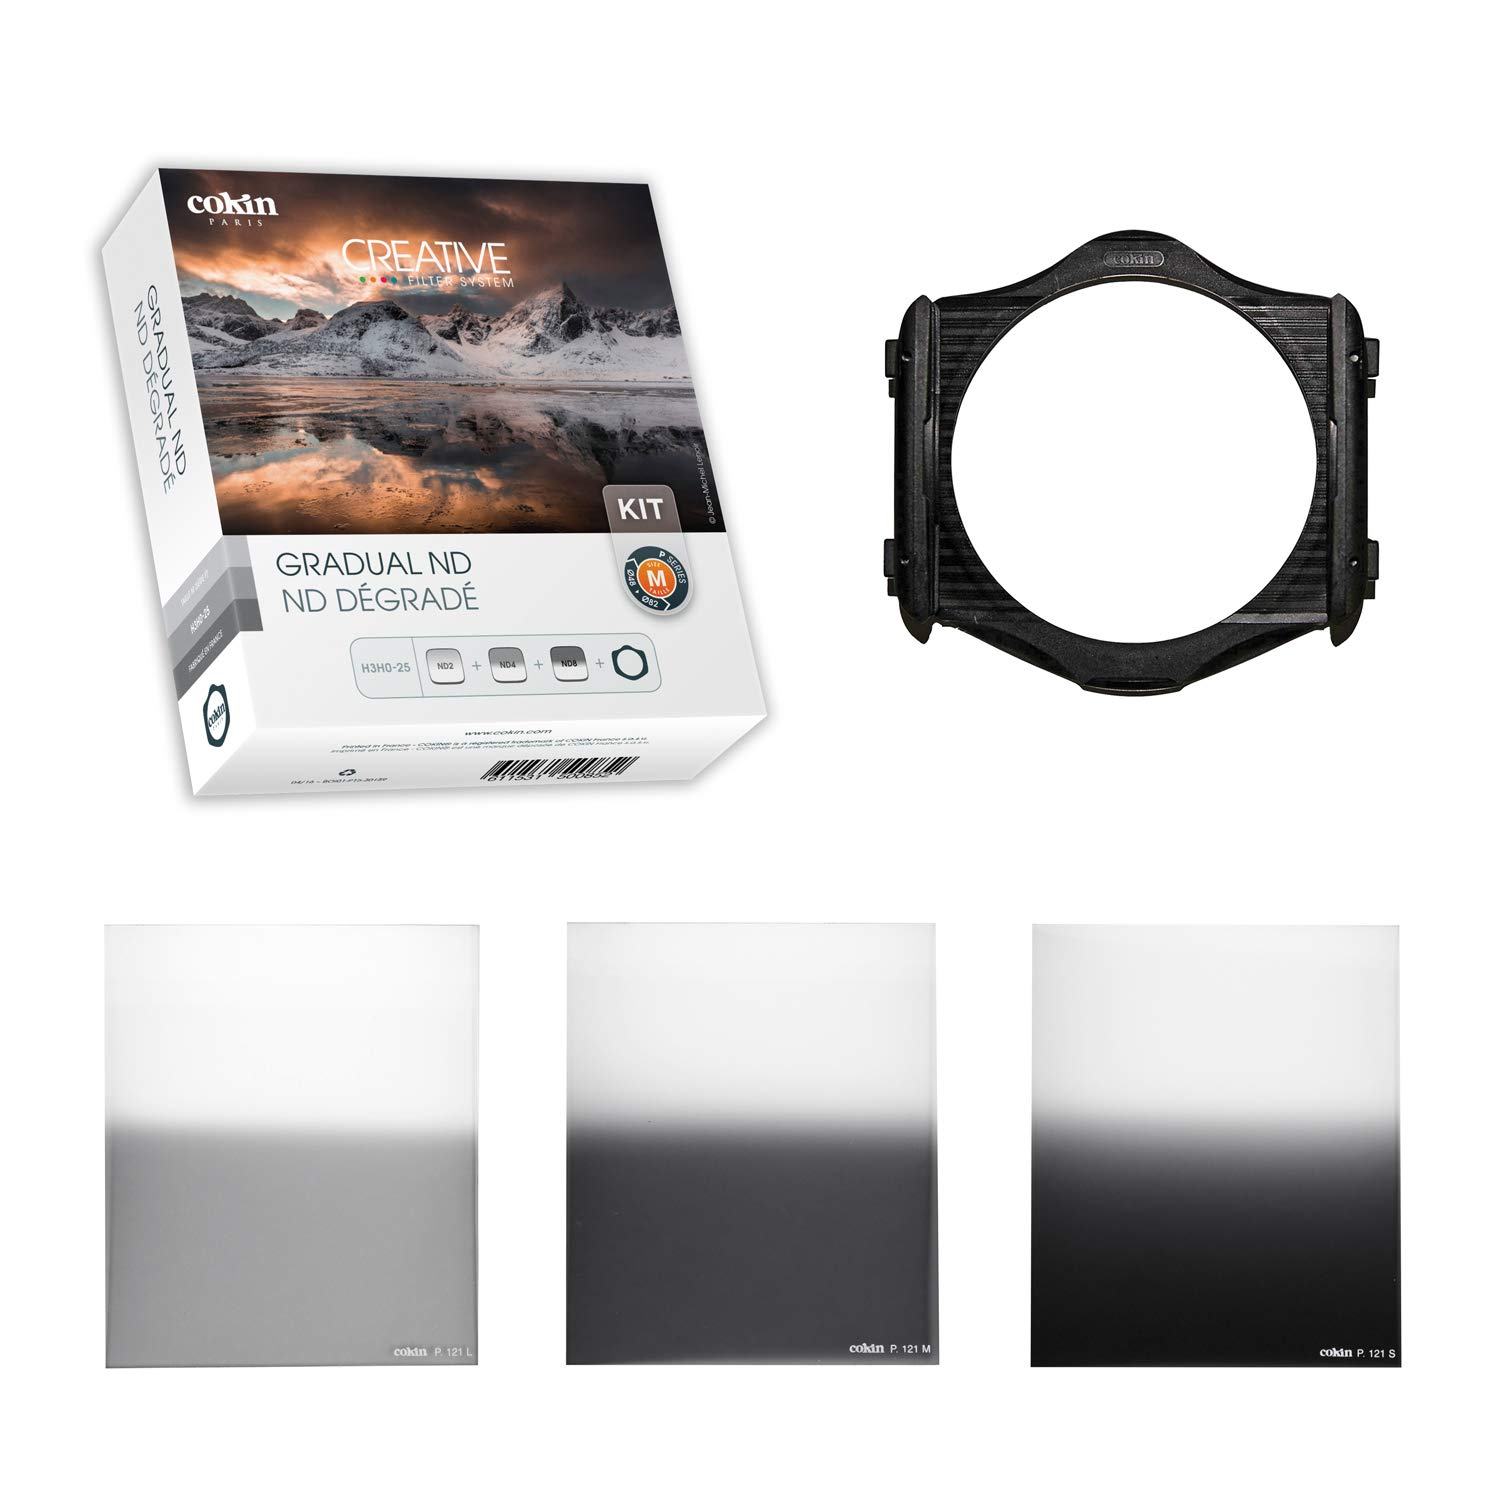 Cokin Square Filter Gradual ND Creative Kit Plus - Includes M (P) Series Filter Holder, Gnd 1-Stop (121L), Gnd 2-Stop (121M), Gnd 3-Stop Soft (121S) by Cokin